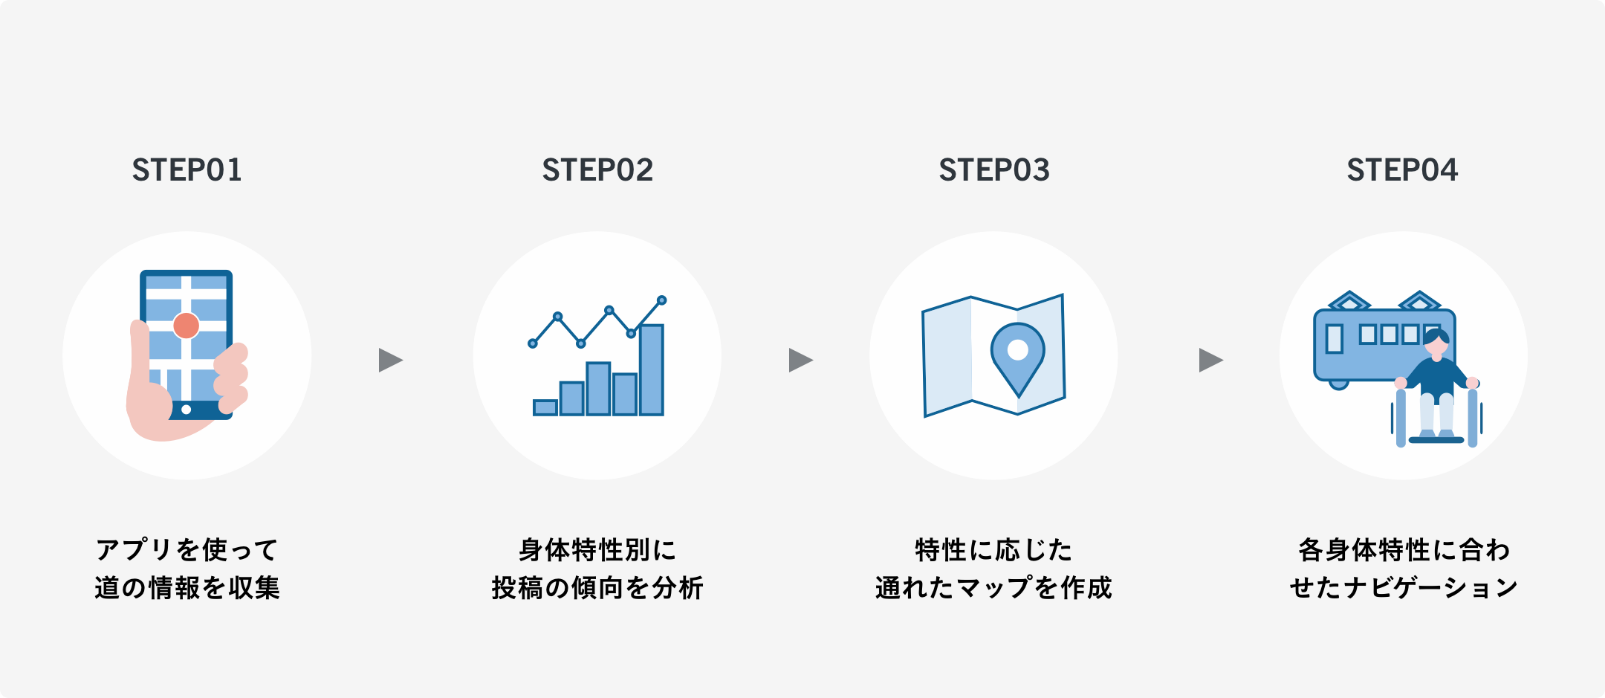 http://corporate.navitime.co.jp/topics/758a6de191181e9d5ab0fa899aee01a2f18a3e54.png